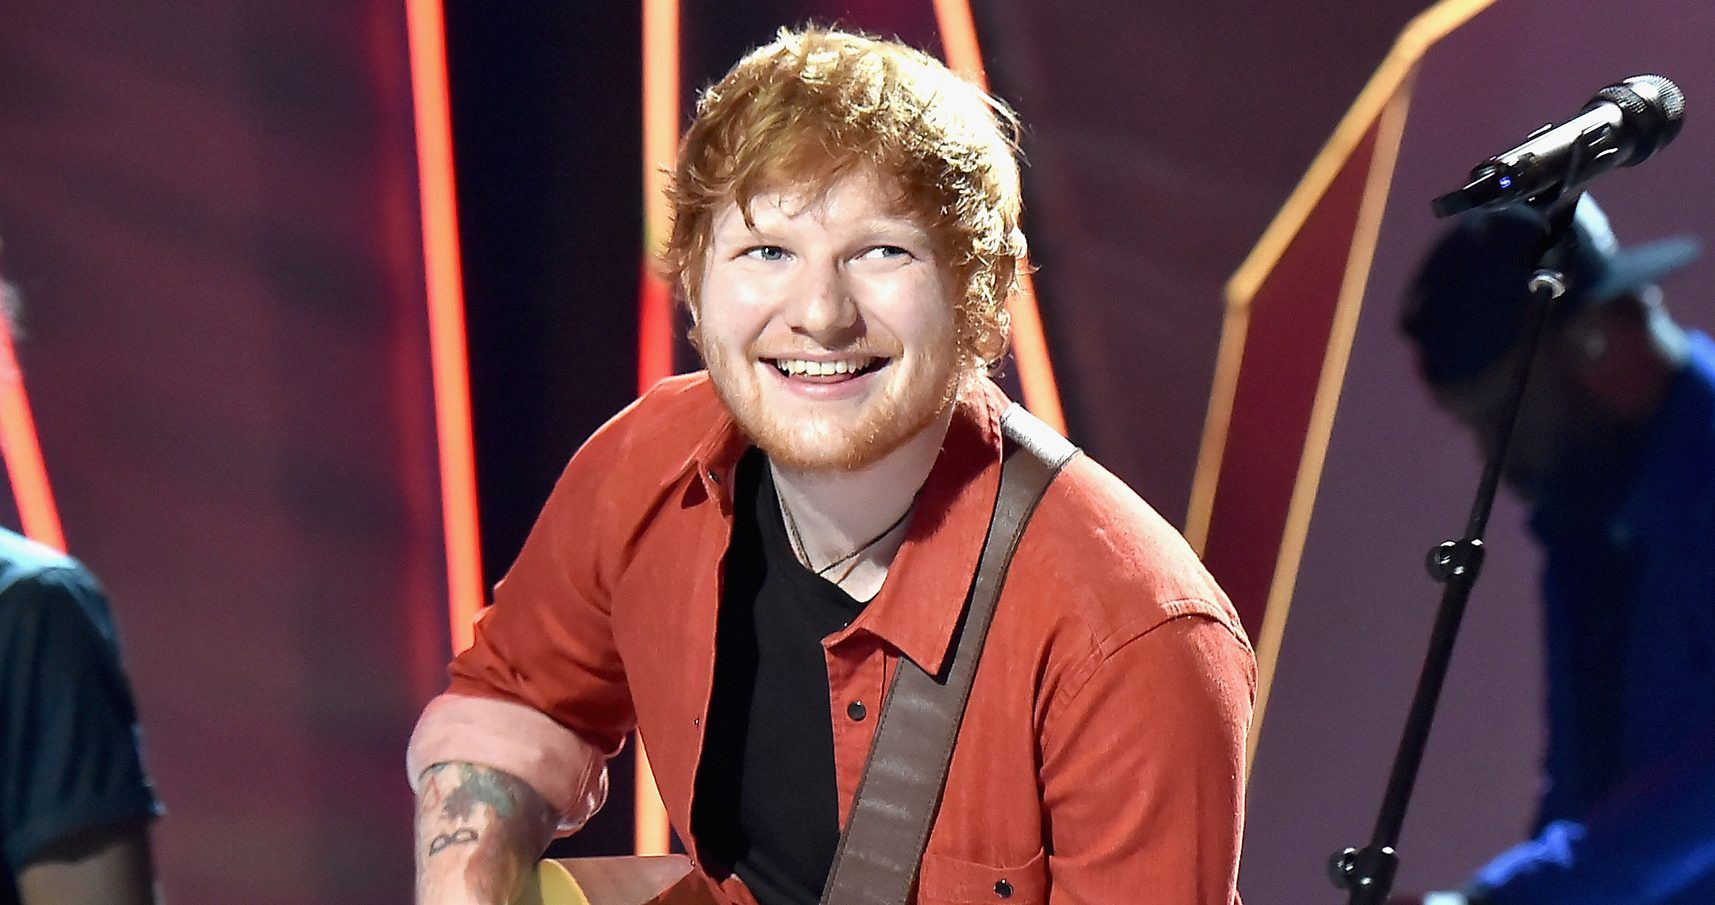 'Ed Sheeran Is Coming' Trends On Twitter After The Singer Hints At Returning To Music